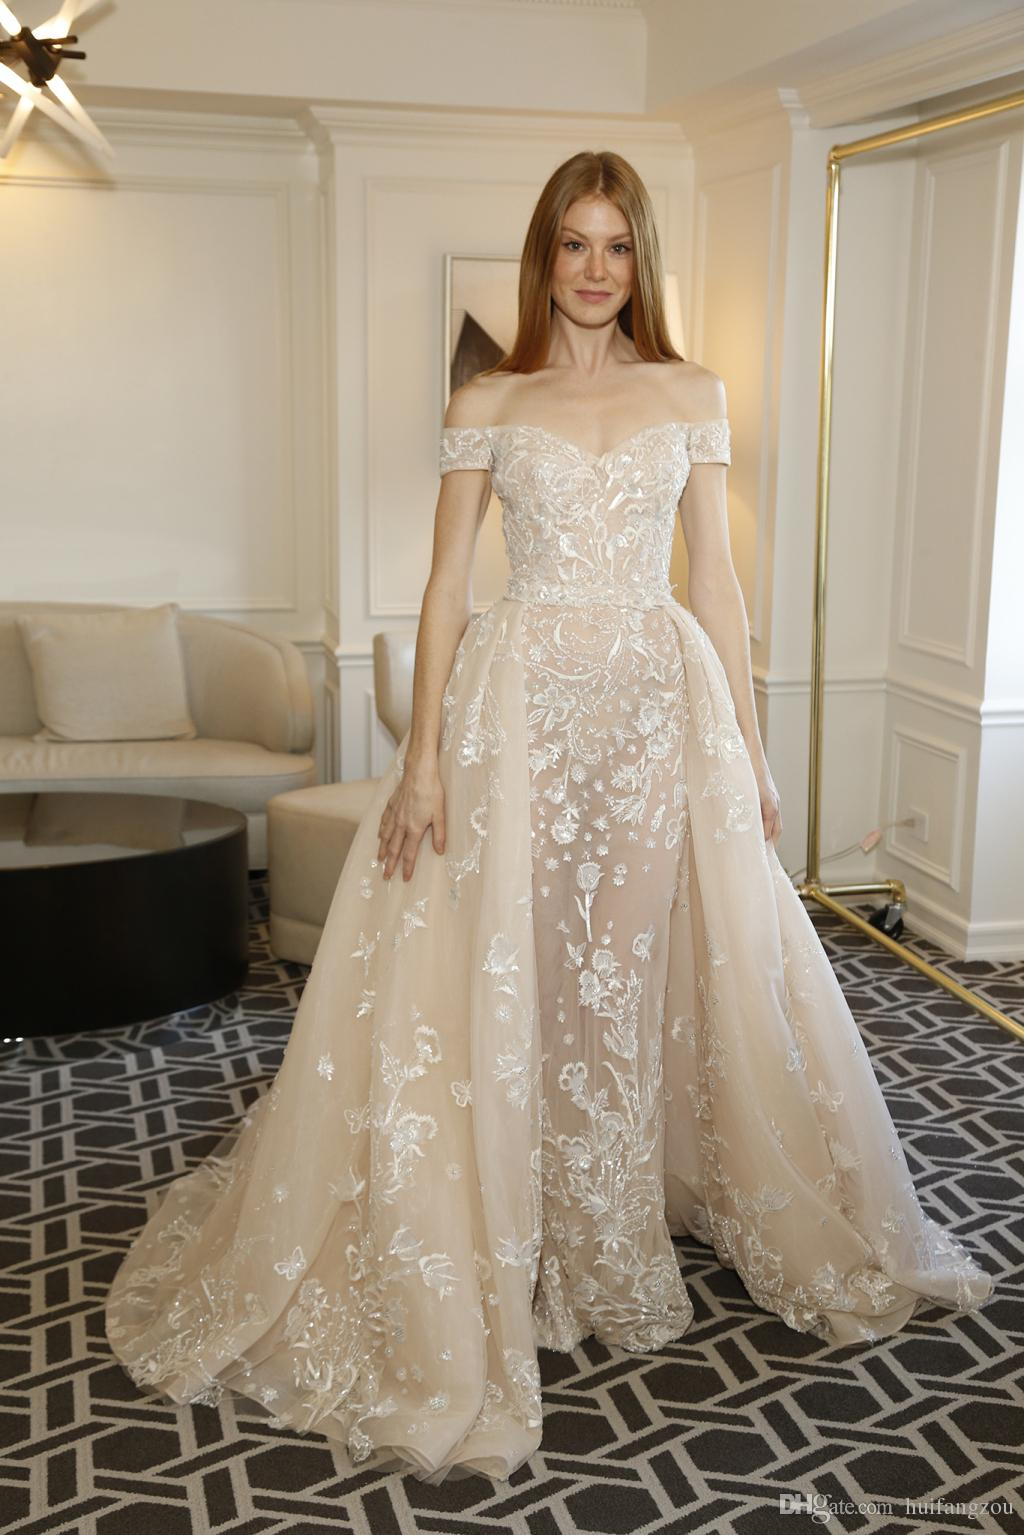 Discount Vintage Zuhair Murad Champagne Wedding Dress Off The Shoulder Wedding Dresses Overkskirt Lace Appliques Country Bridal Gowns Custom Made Cheap Bridal Gowns Civil Wedding Dresses From Huifangzou 177 16 Dhgate Com